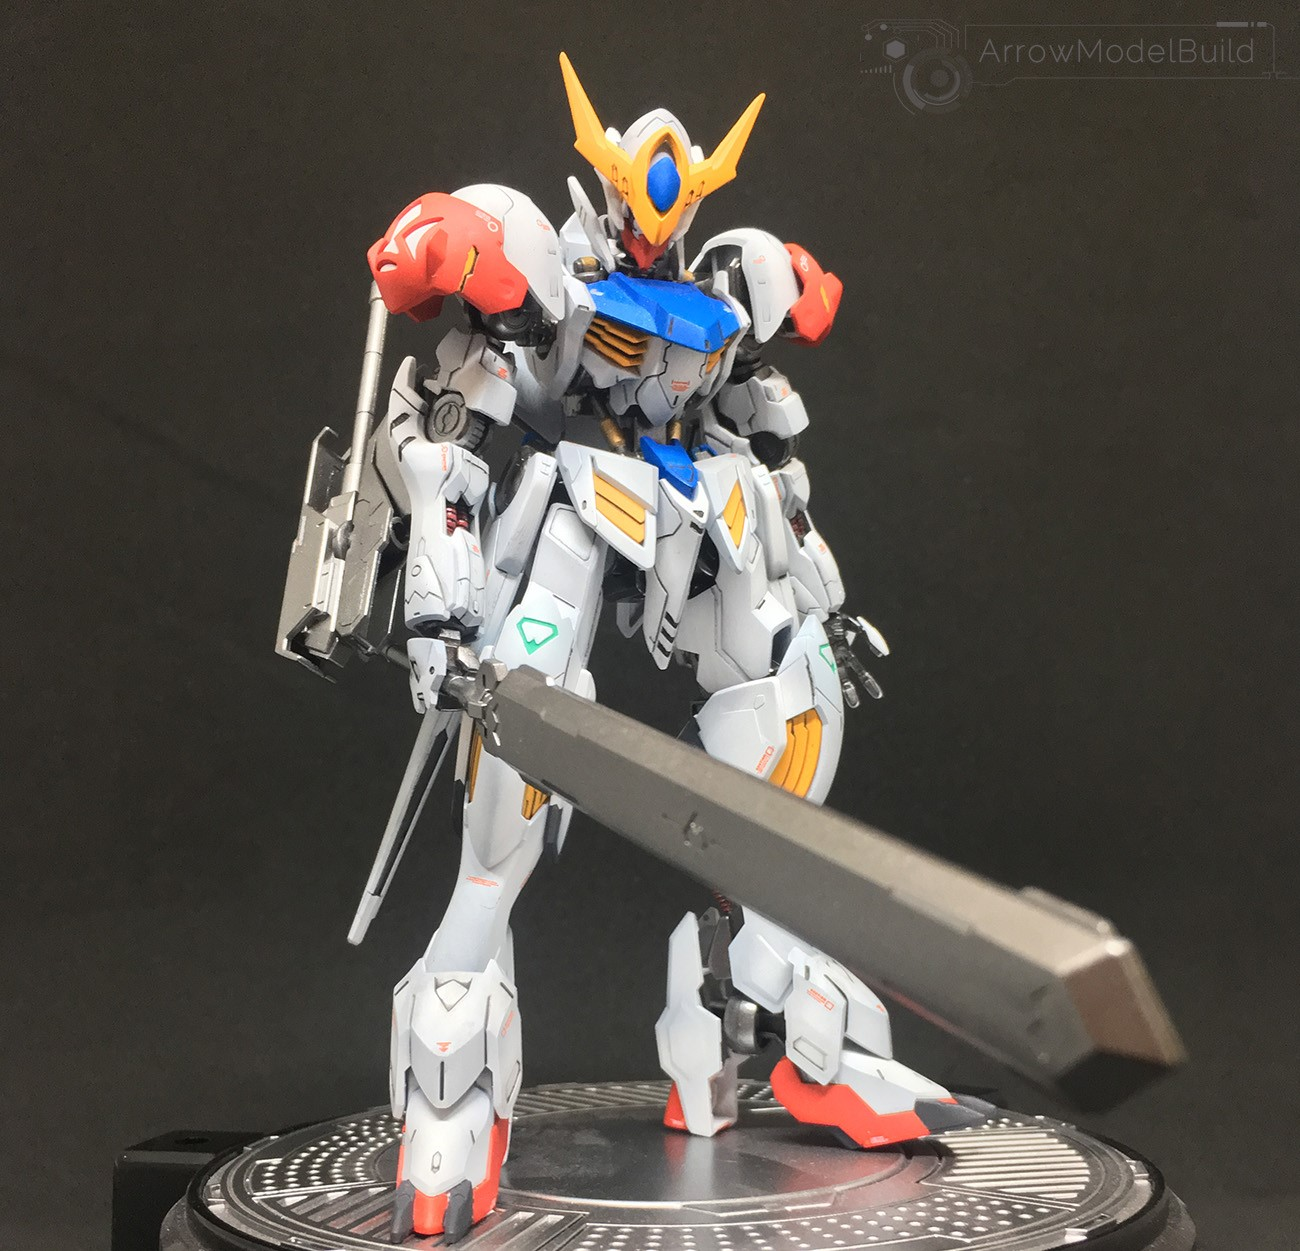 Arrowmodelbuild Gundam Barbatos Lupus Rex Built Painted Hg 1 144 Model Kit Ebay Cheap action & toy figures, buy quality toys & hobbies directly from china suppliers:comic club refitting suite of gk resin dragon king for gundam tv 1/100 barbatos lupus rex enjoy ✓free. details about arrowmodelbuild gundam barbatos lupus rex built painted hg 1 144 model kit